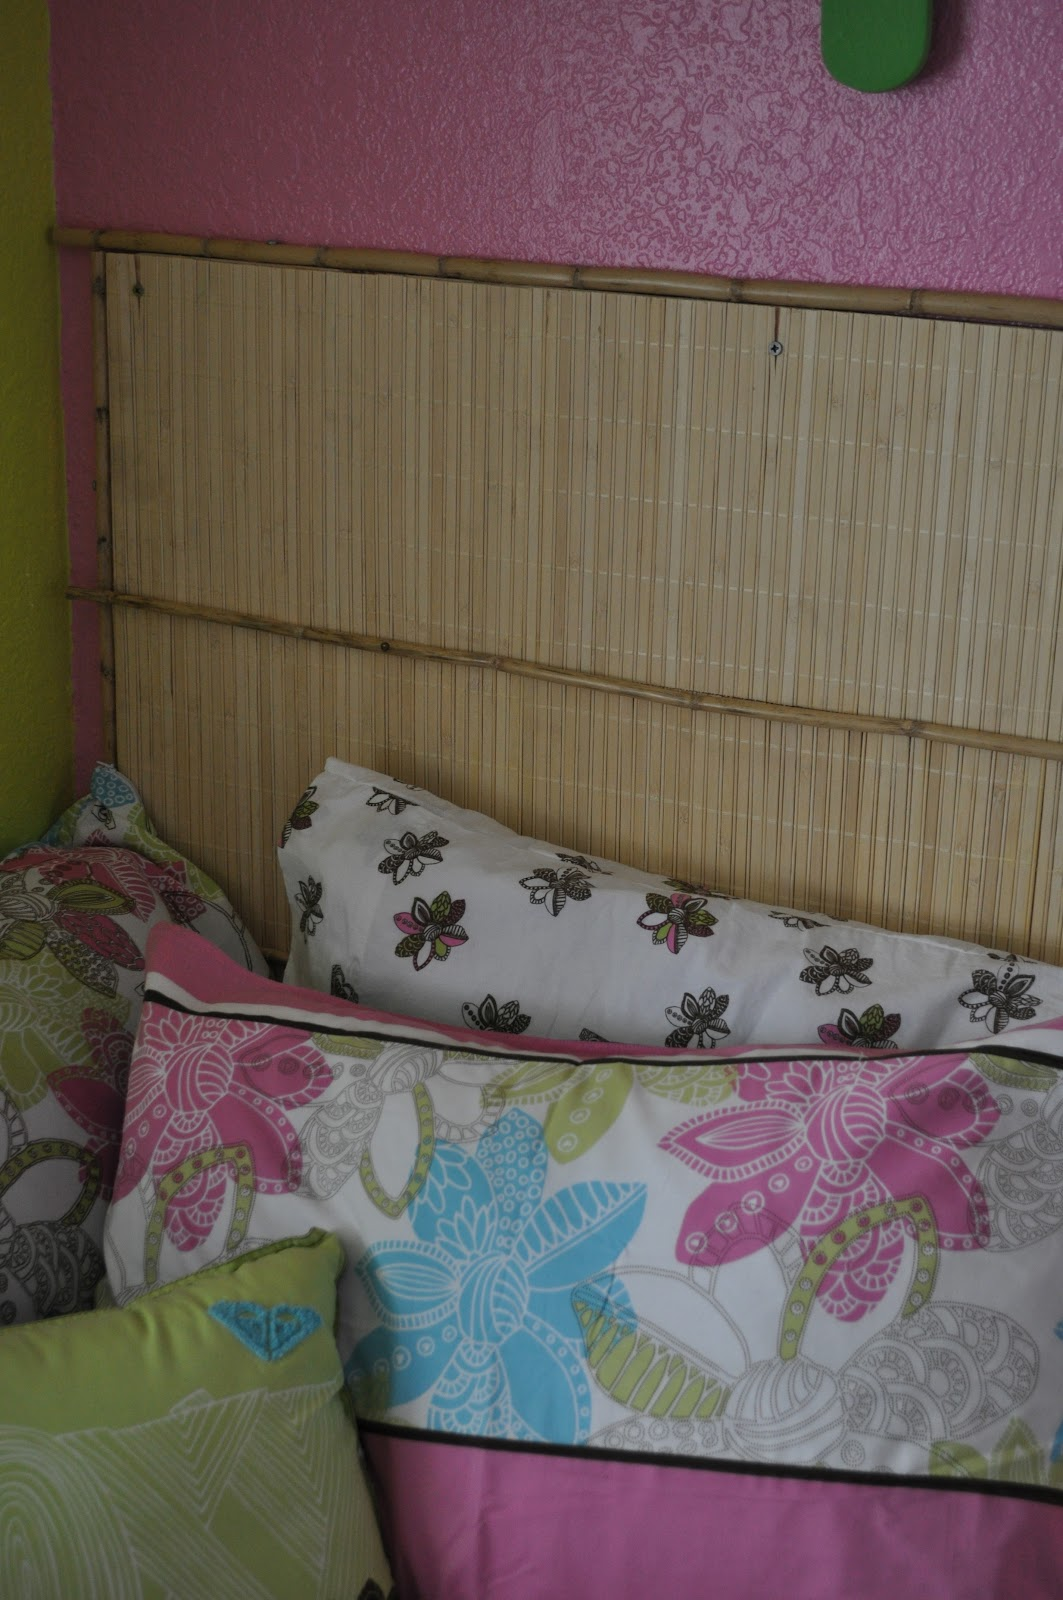 Roxy bedding samantha - My Husband Made The Headboard It S Just Plywood With Some Bamboo Sticks Framing It I Found Bamboo Placemats In The Dollar Section At Target And We Glued